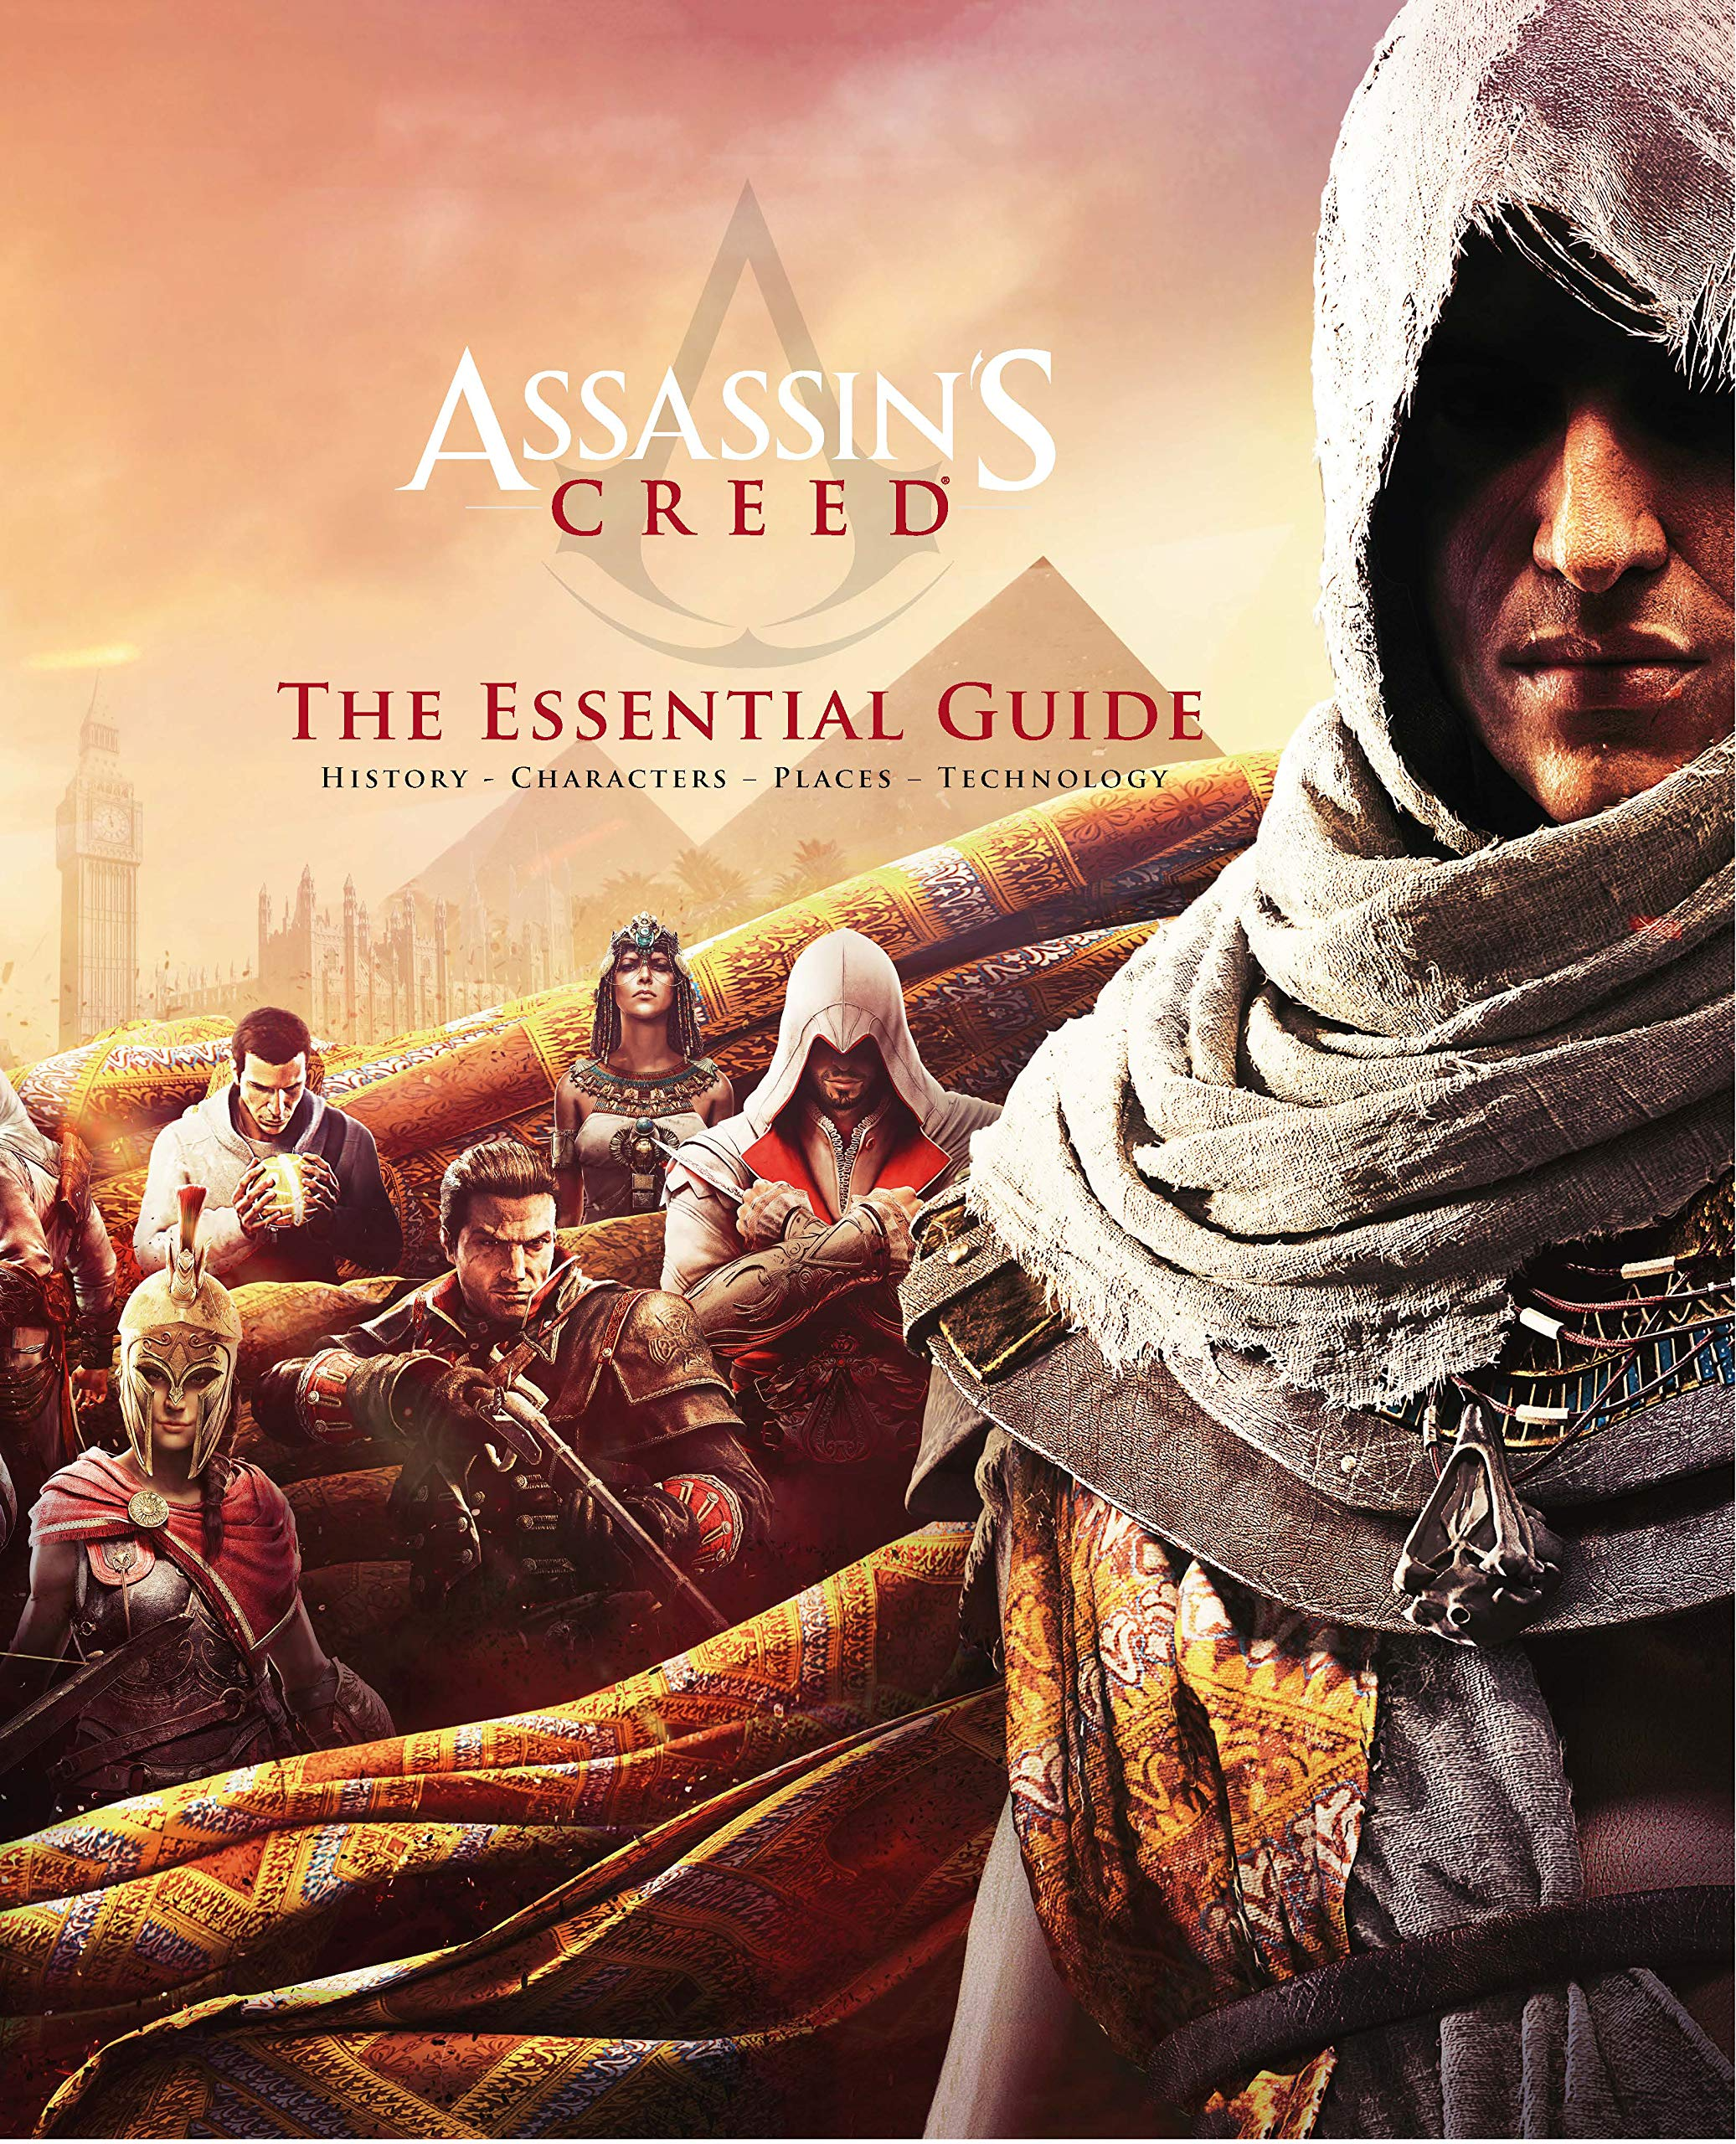 assassin's creed books in order